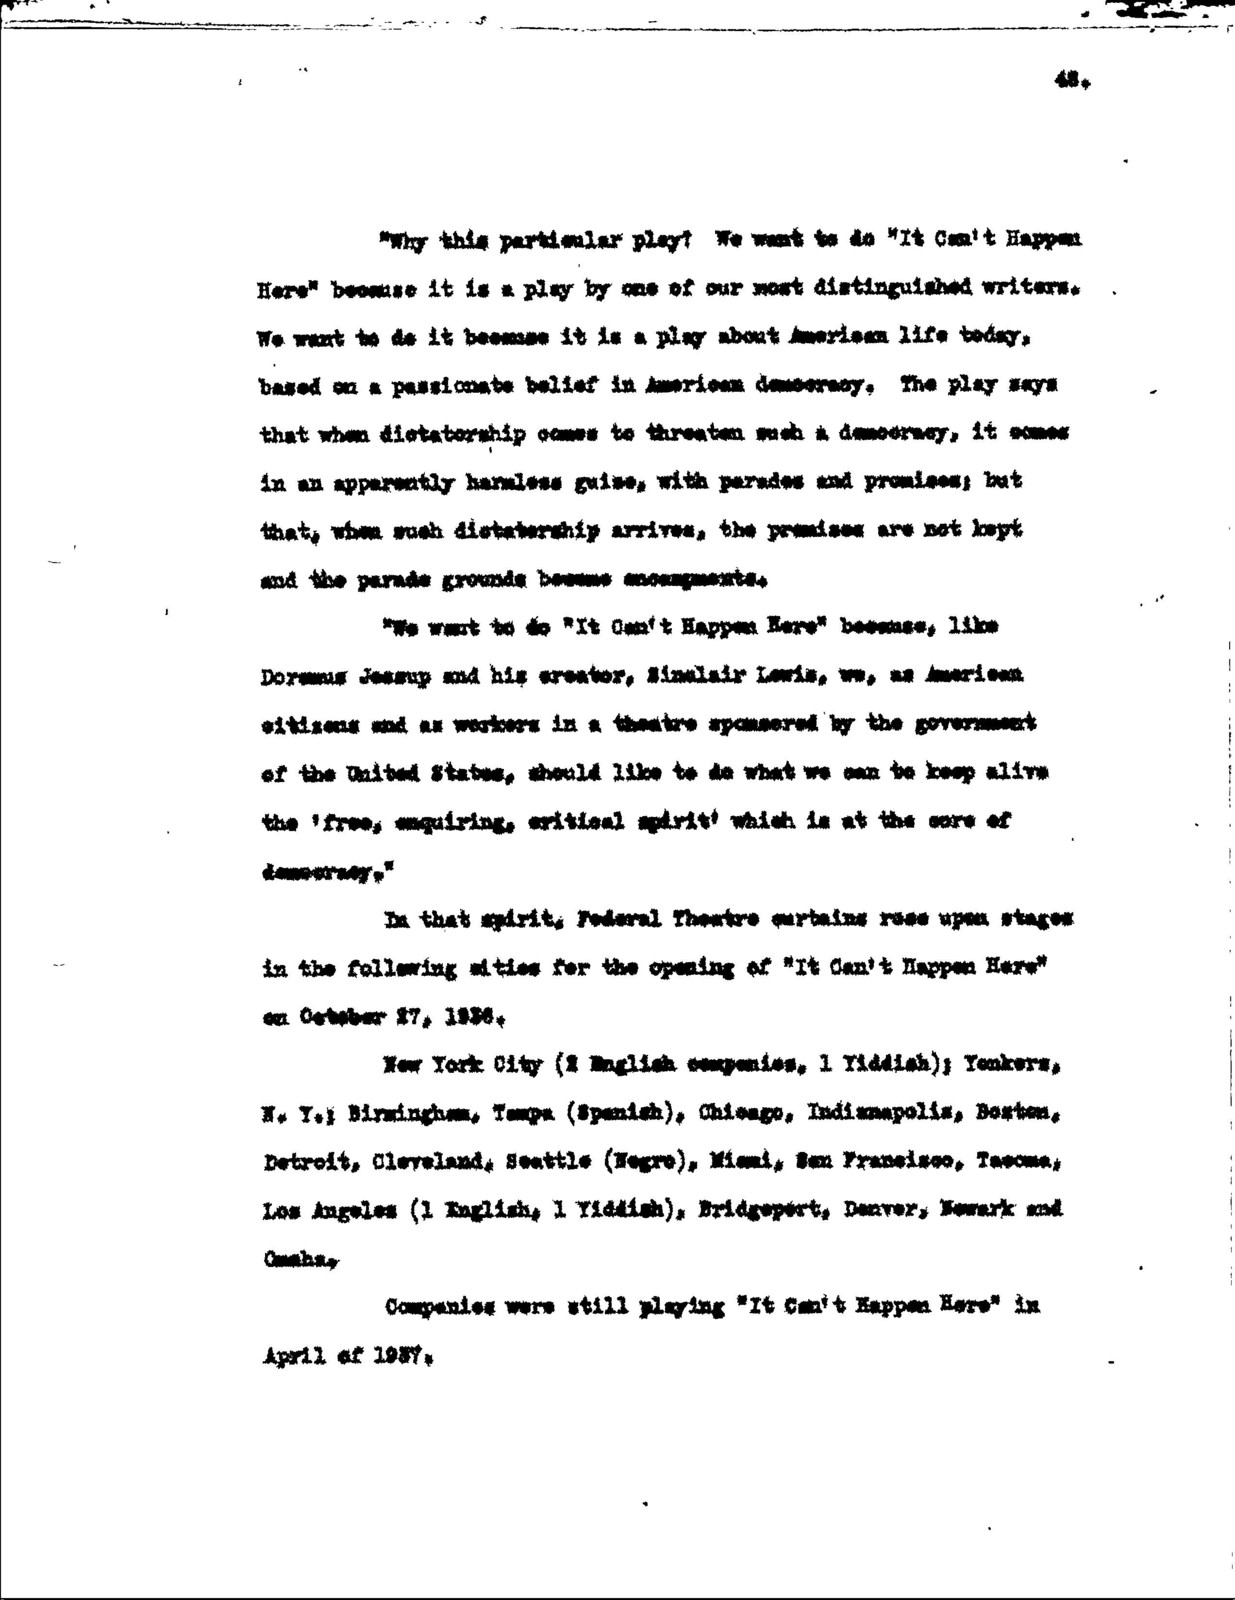 Educational Aspects of the Federal Theatre Project, copy 1